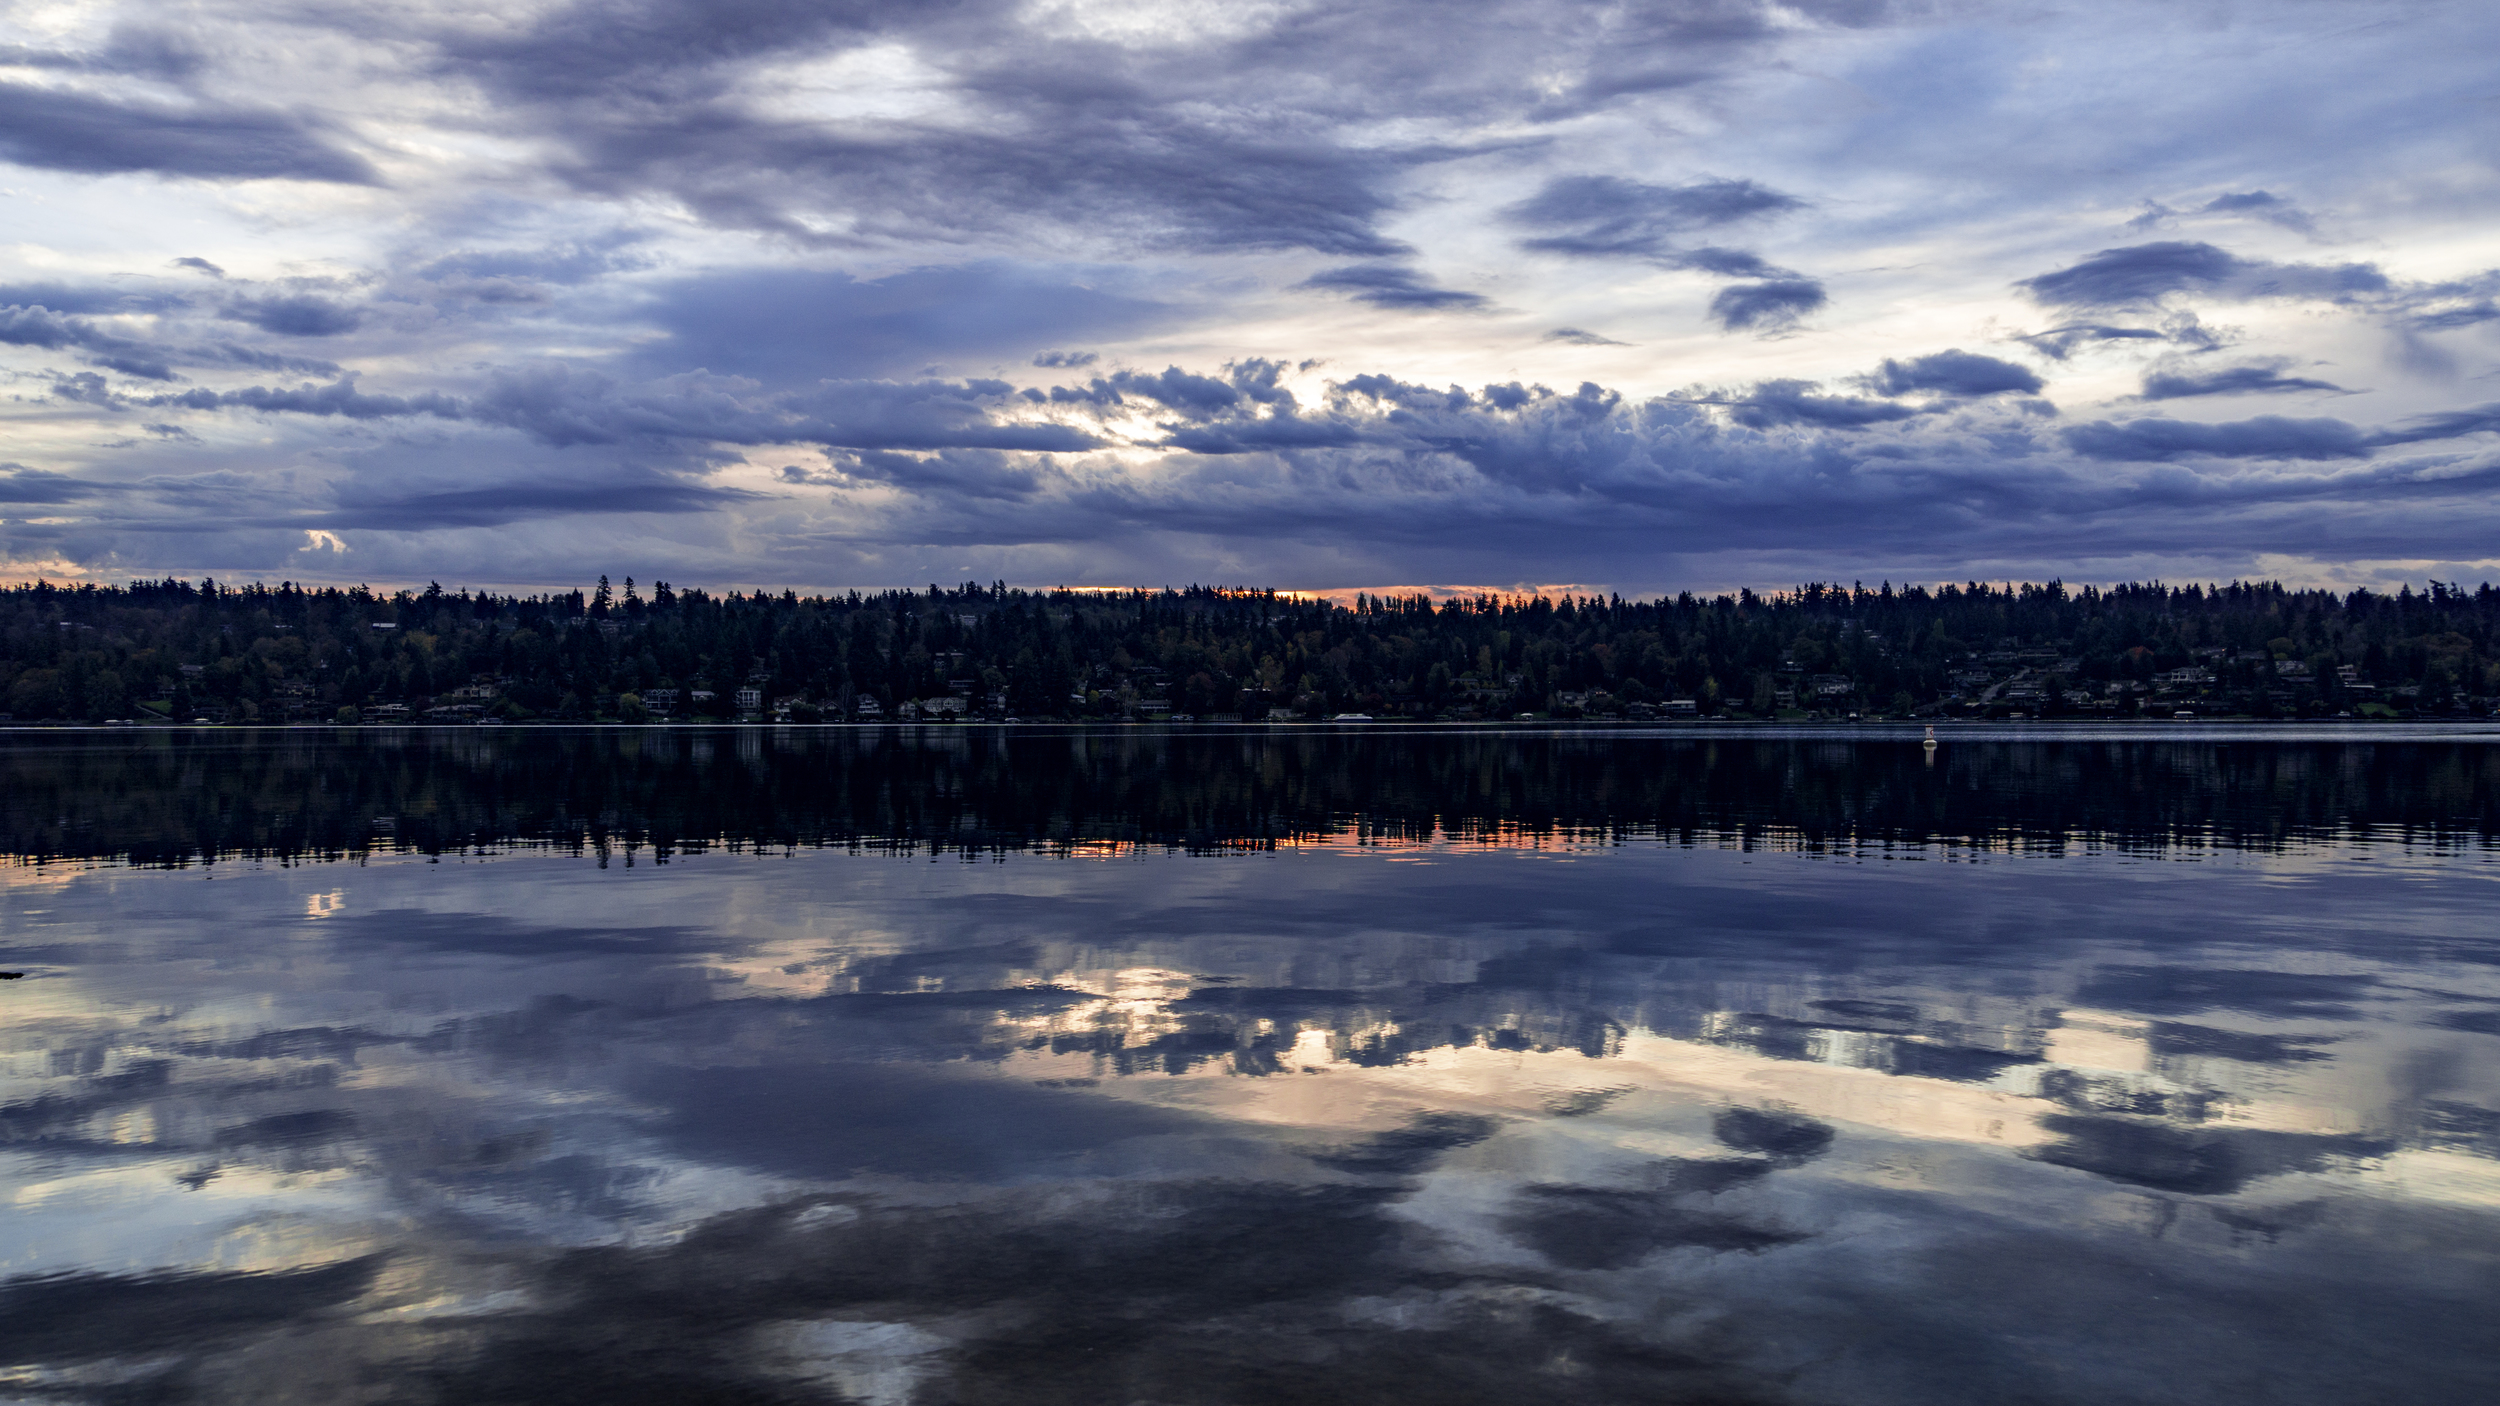 #lake #washington #sunrise #reflection